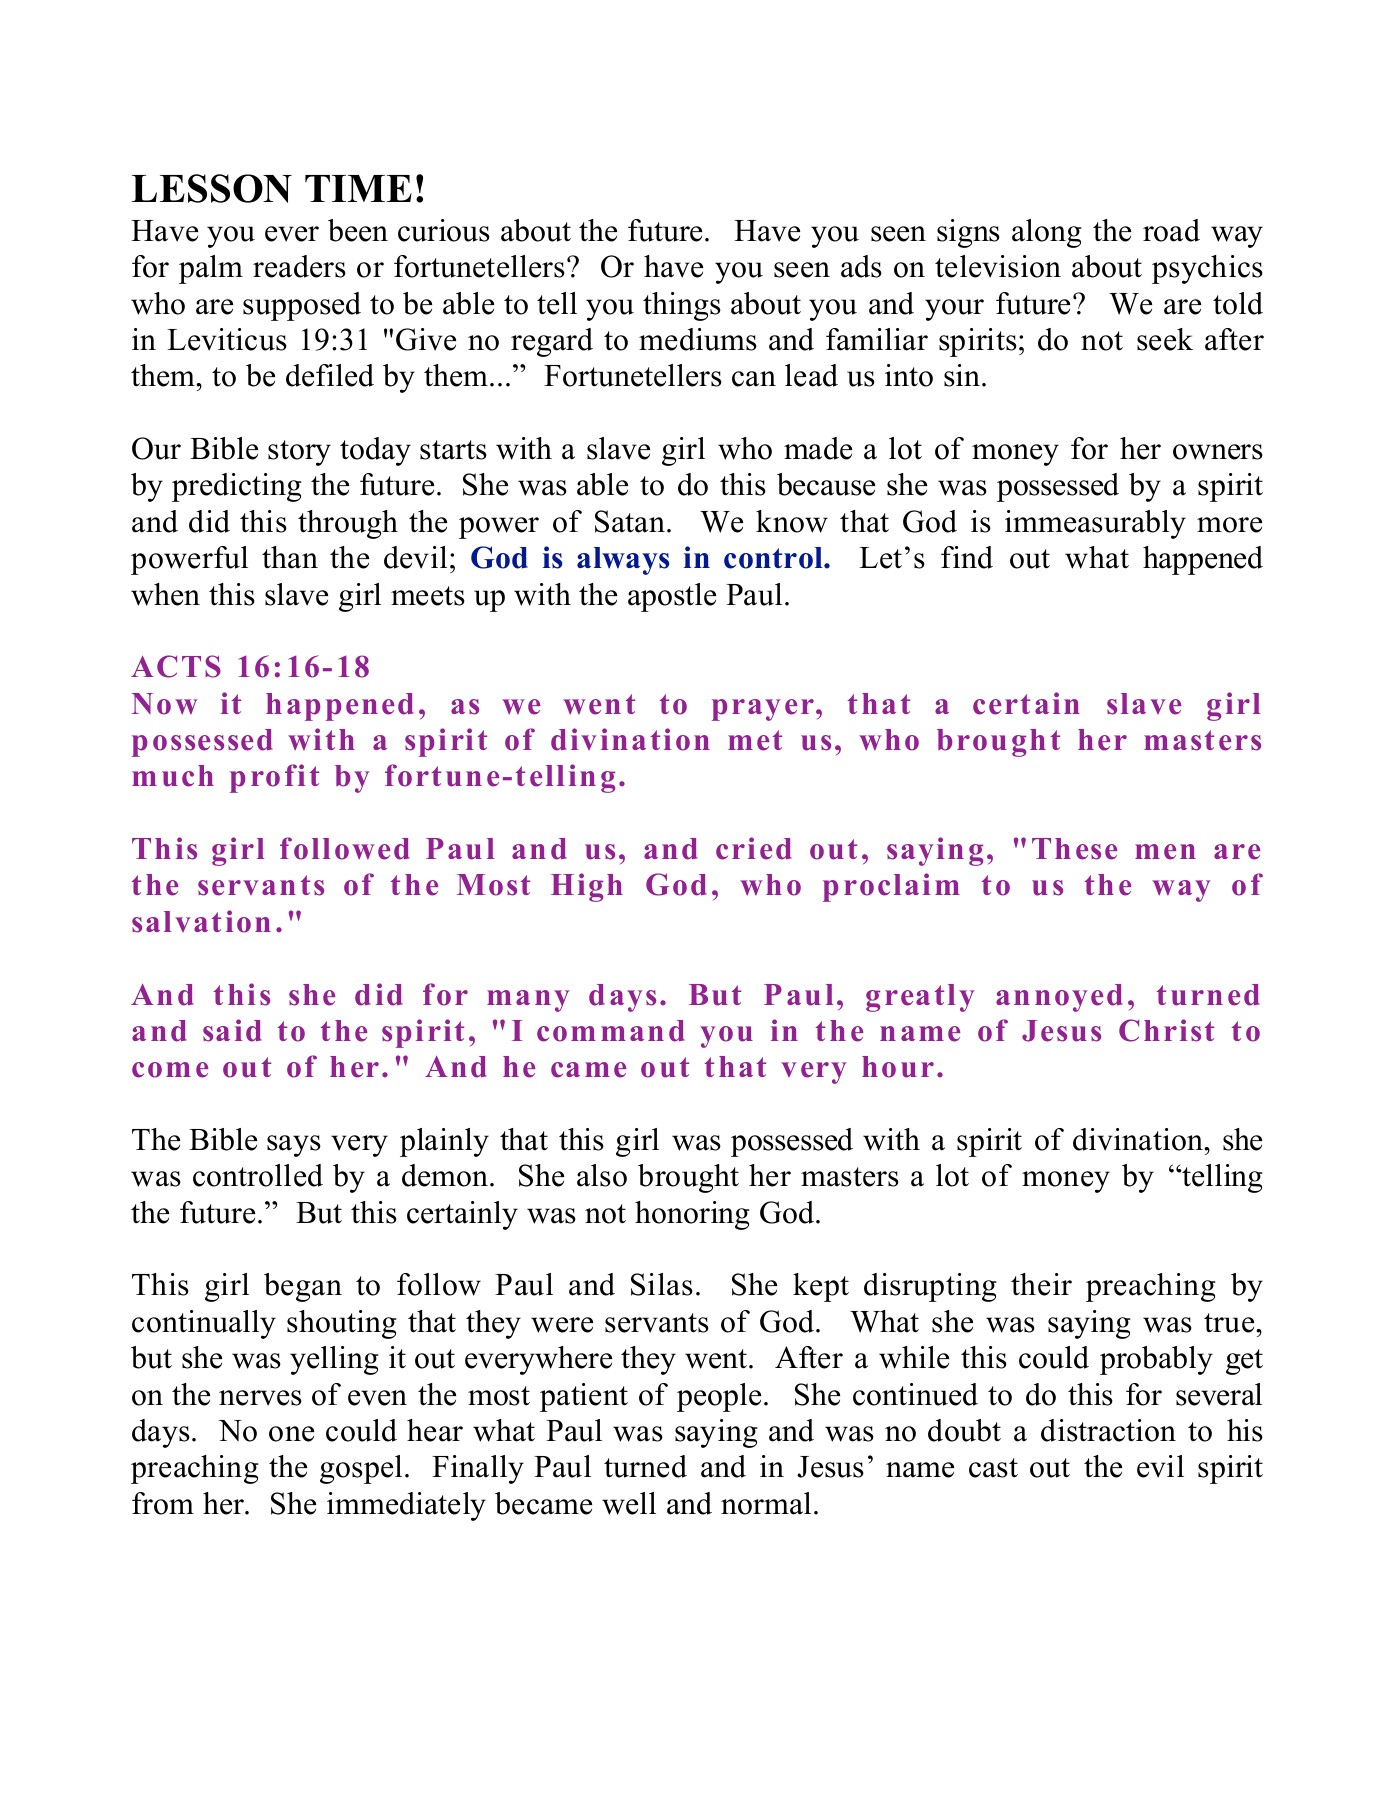 Paul And Silas Are Imprisoned Acts 16:16-40 Pages 1 - 9